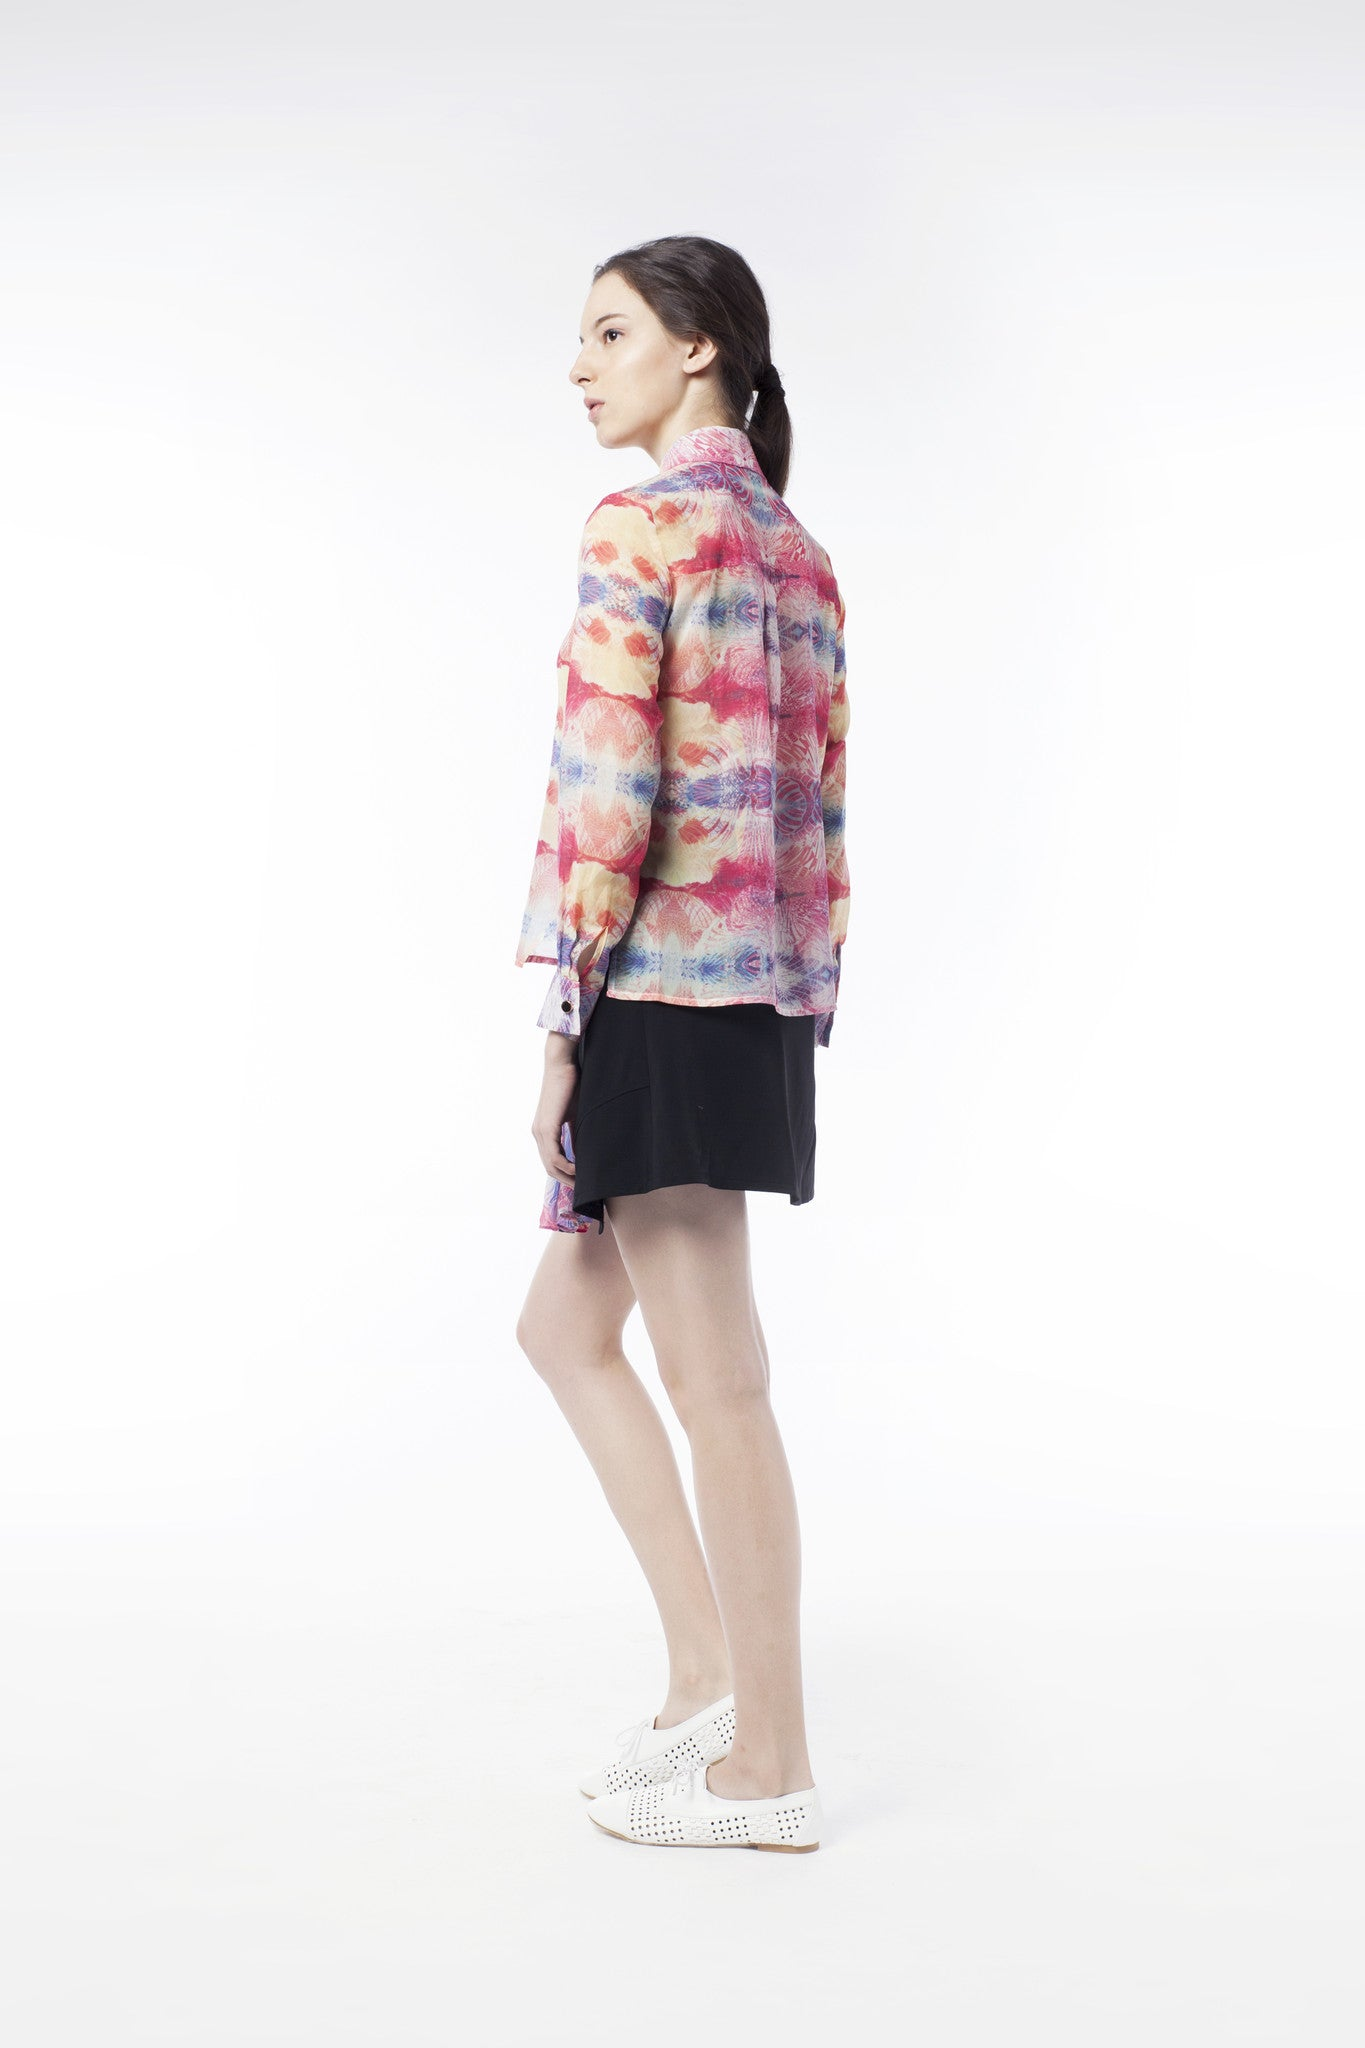 Kaleidoscopic Print Sheer Blouse - GlanceZ   - 3